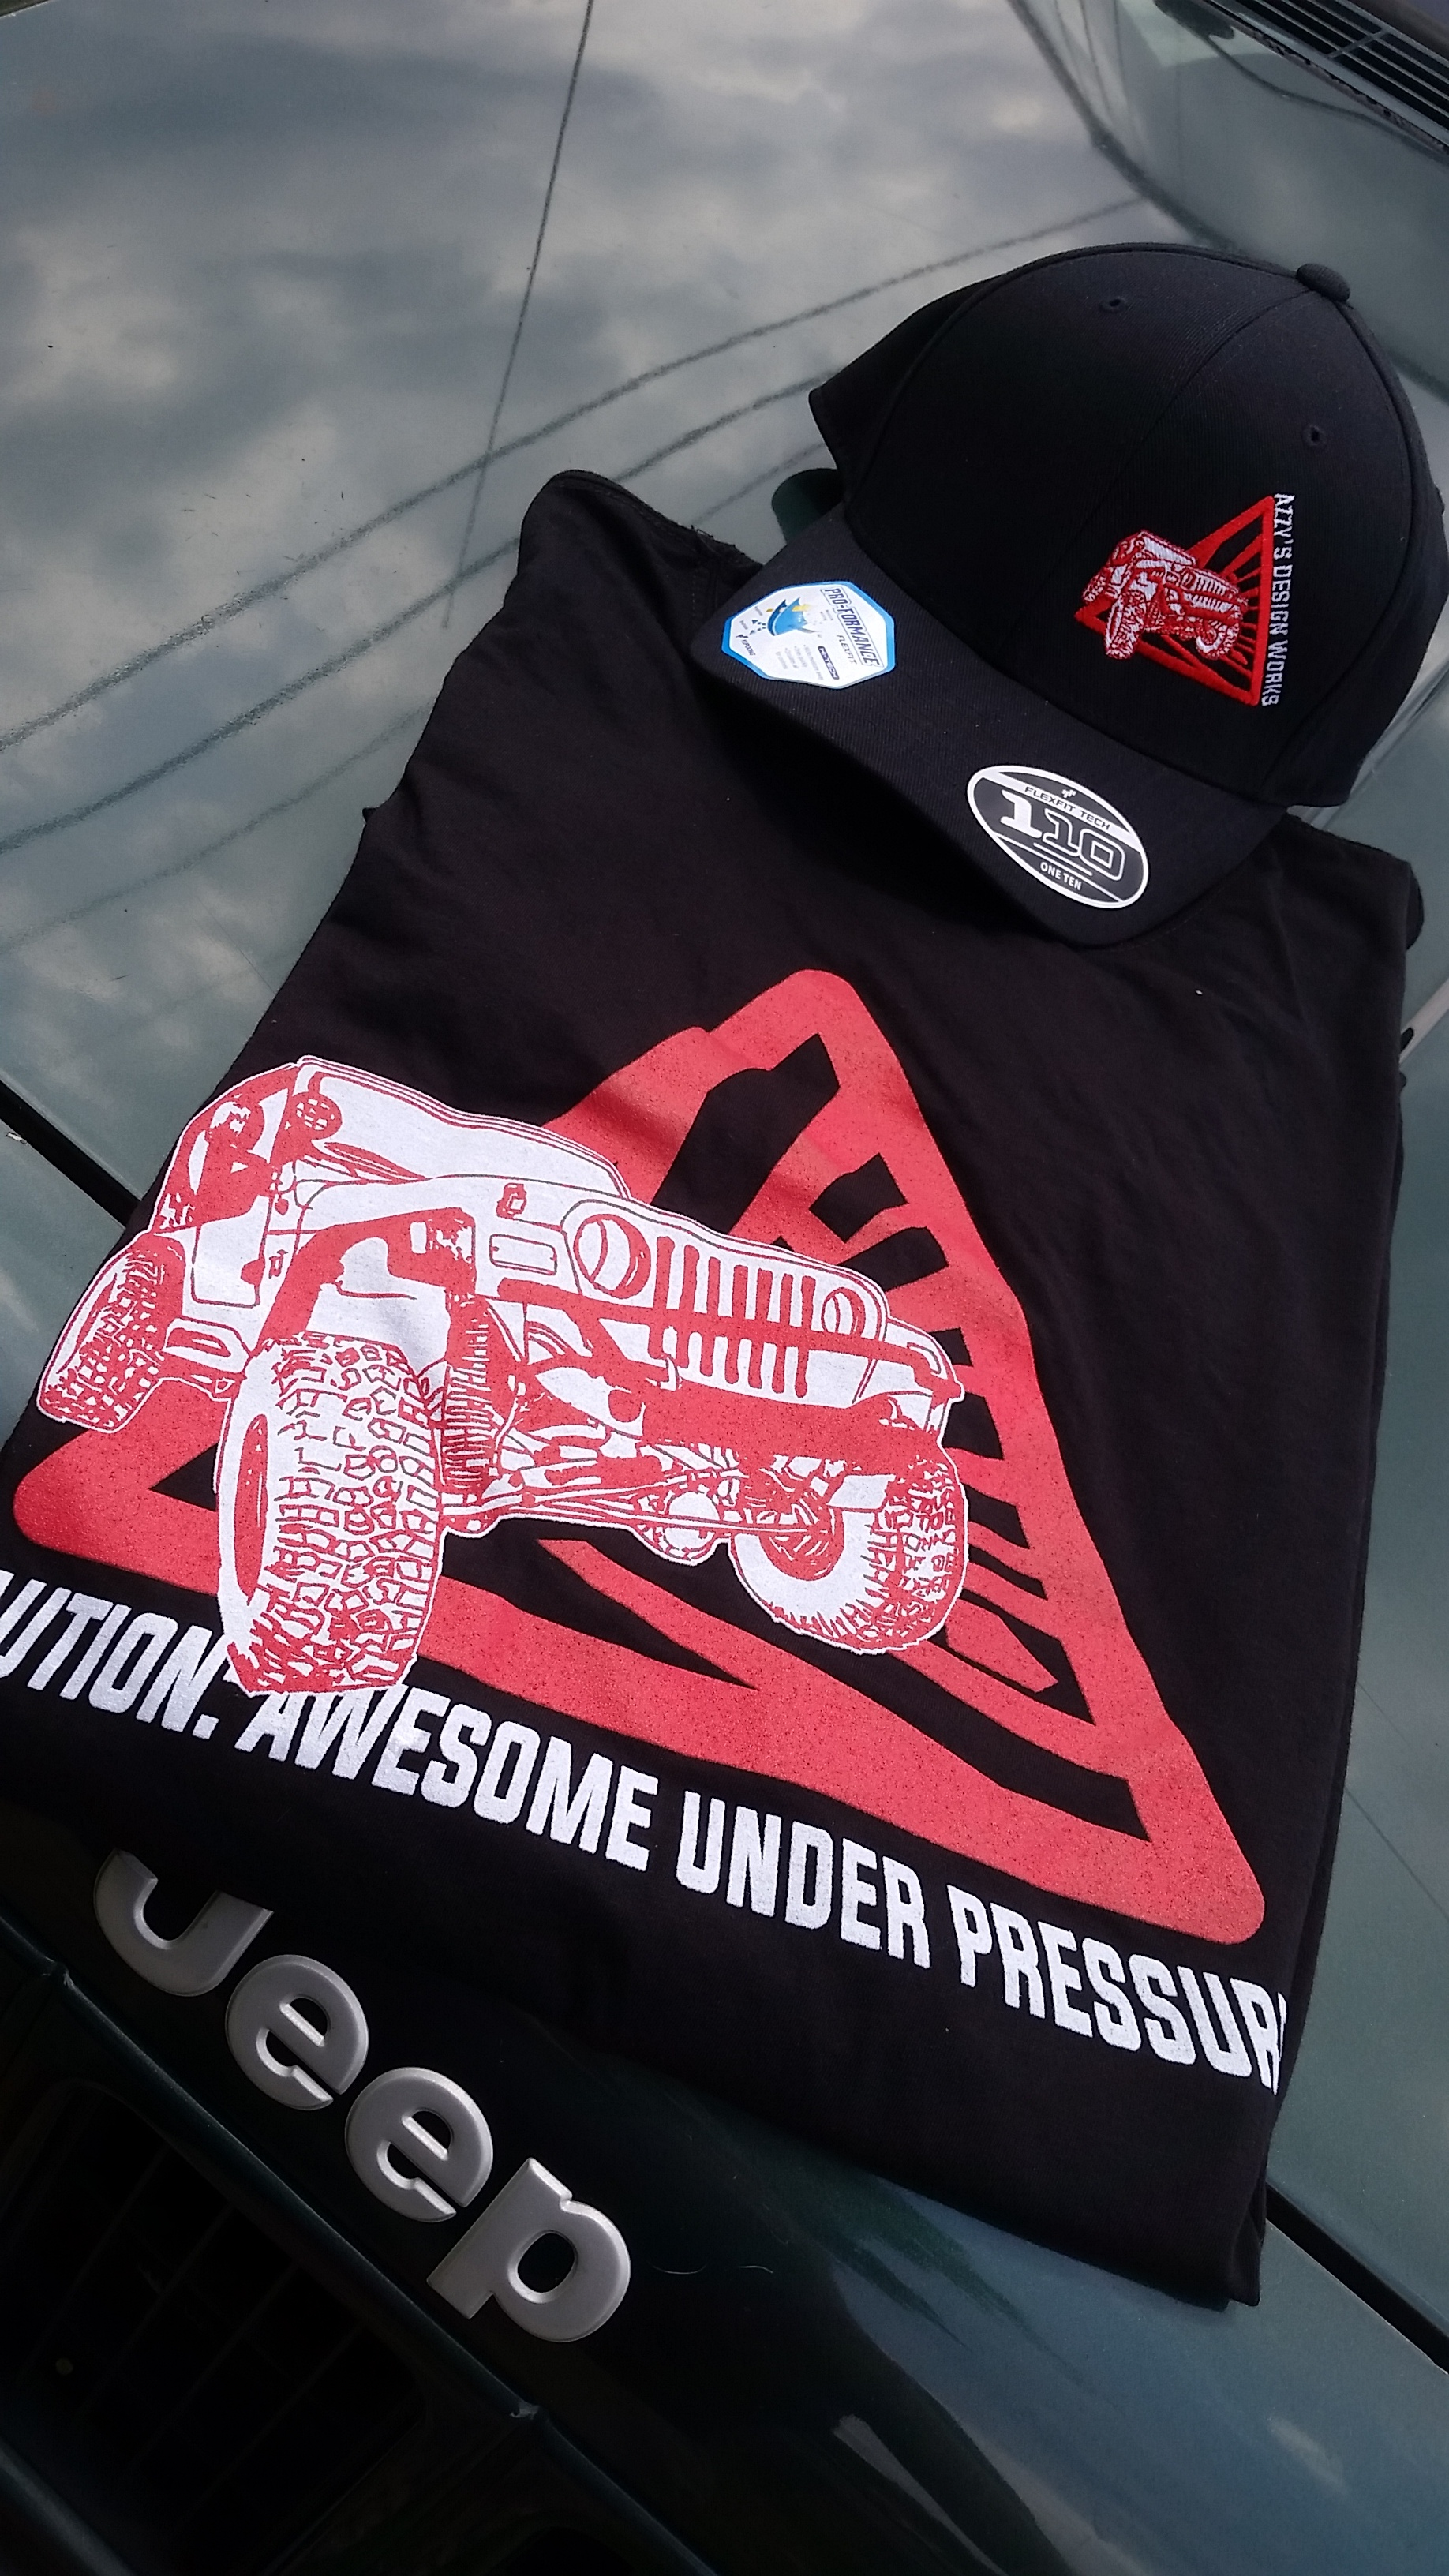 Awesome Under Pressure Jeep Wrangler shirts now in black sport varieties. Hats too!